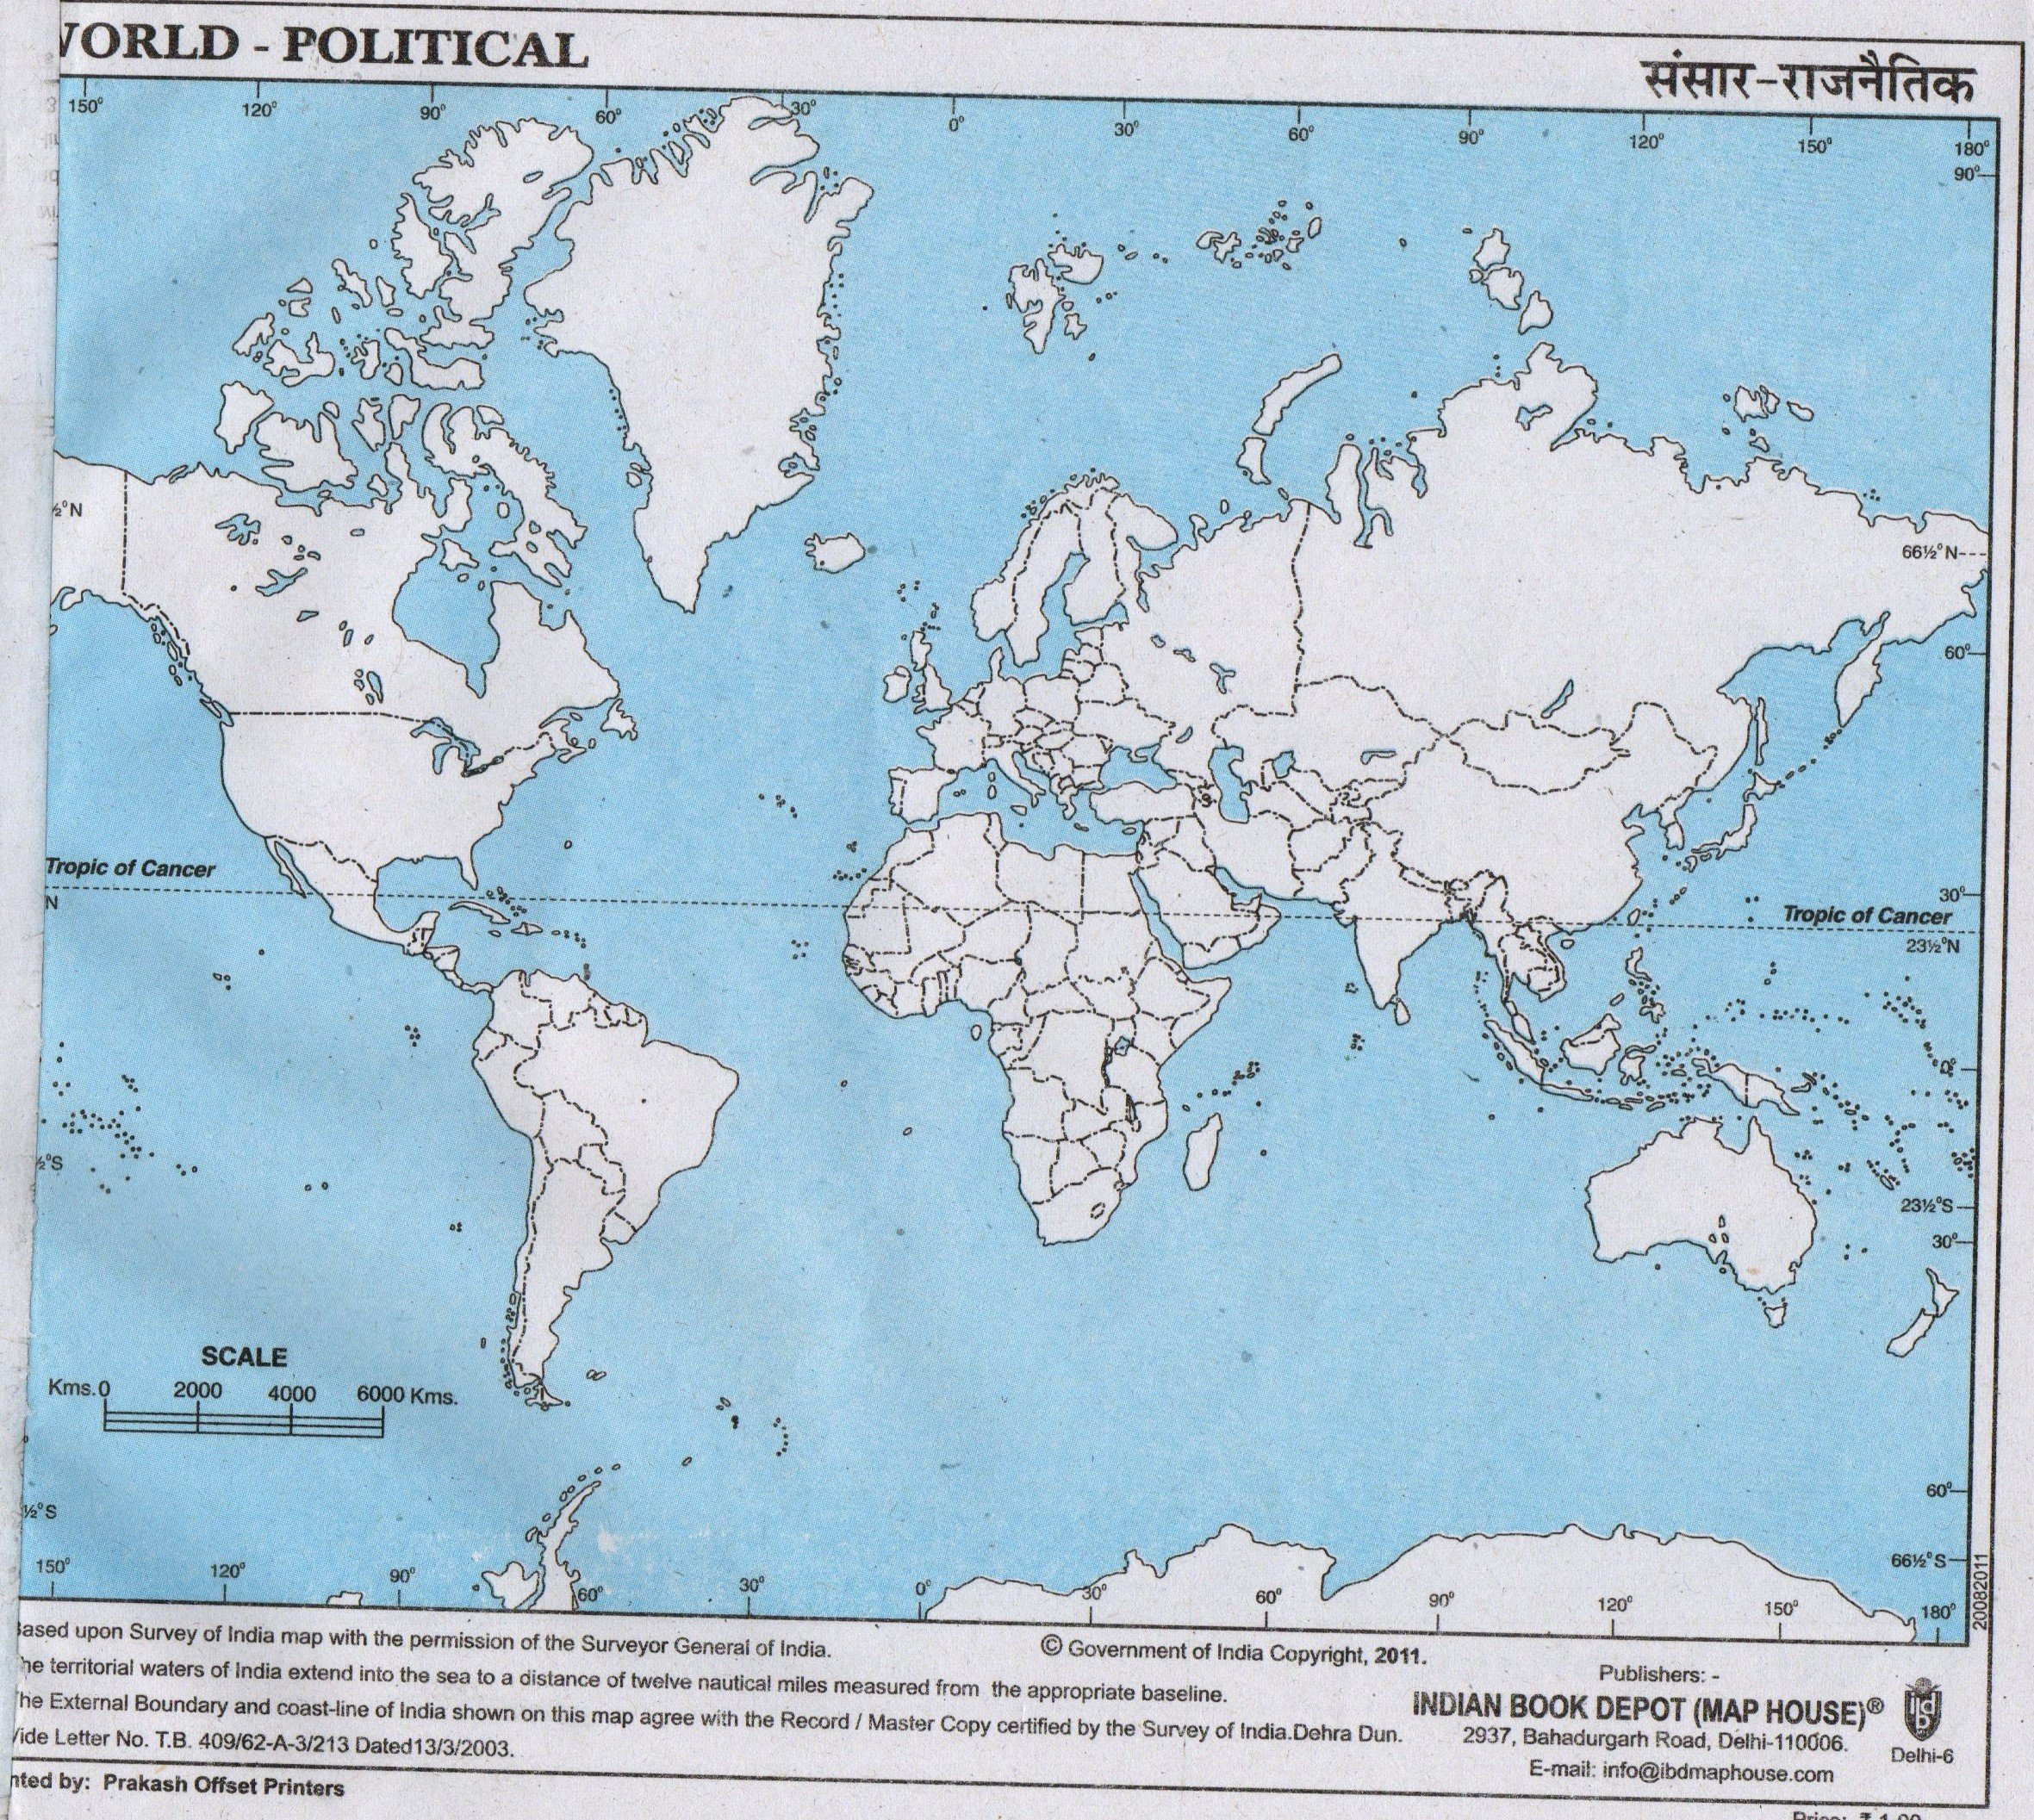 Outline Map Of World Buy Outline Map of World Political Set of 5 Book Online at Low